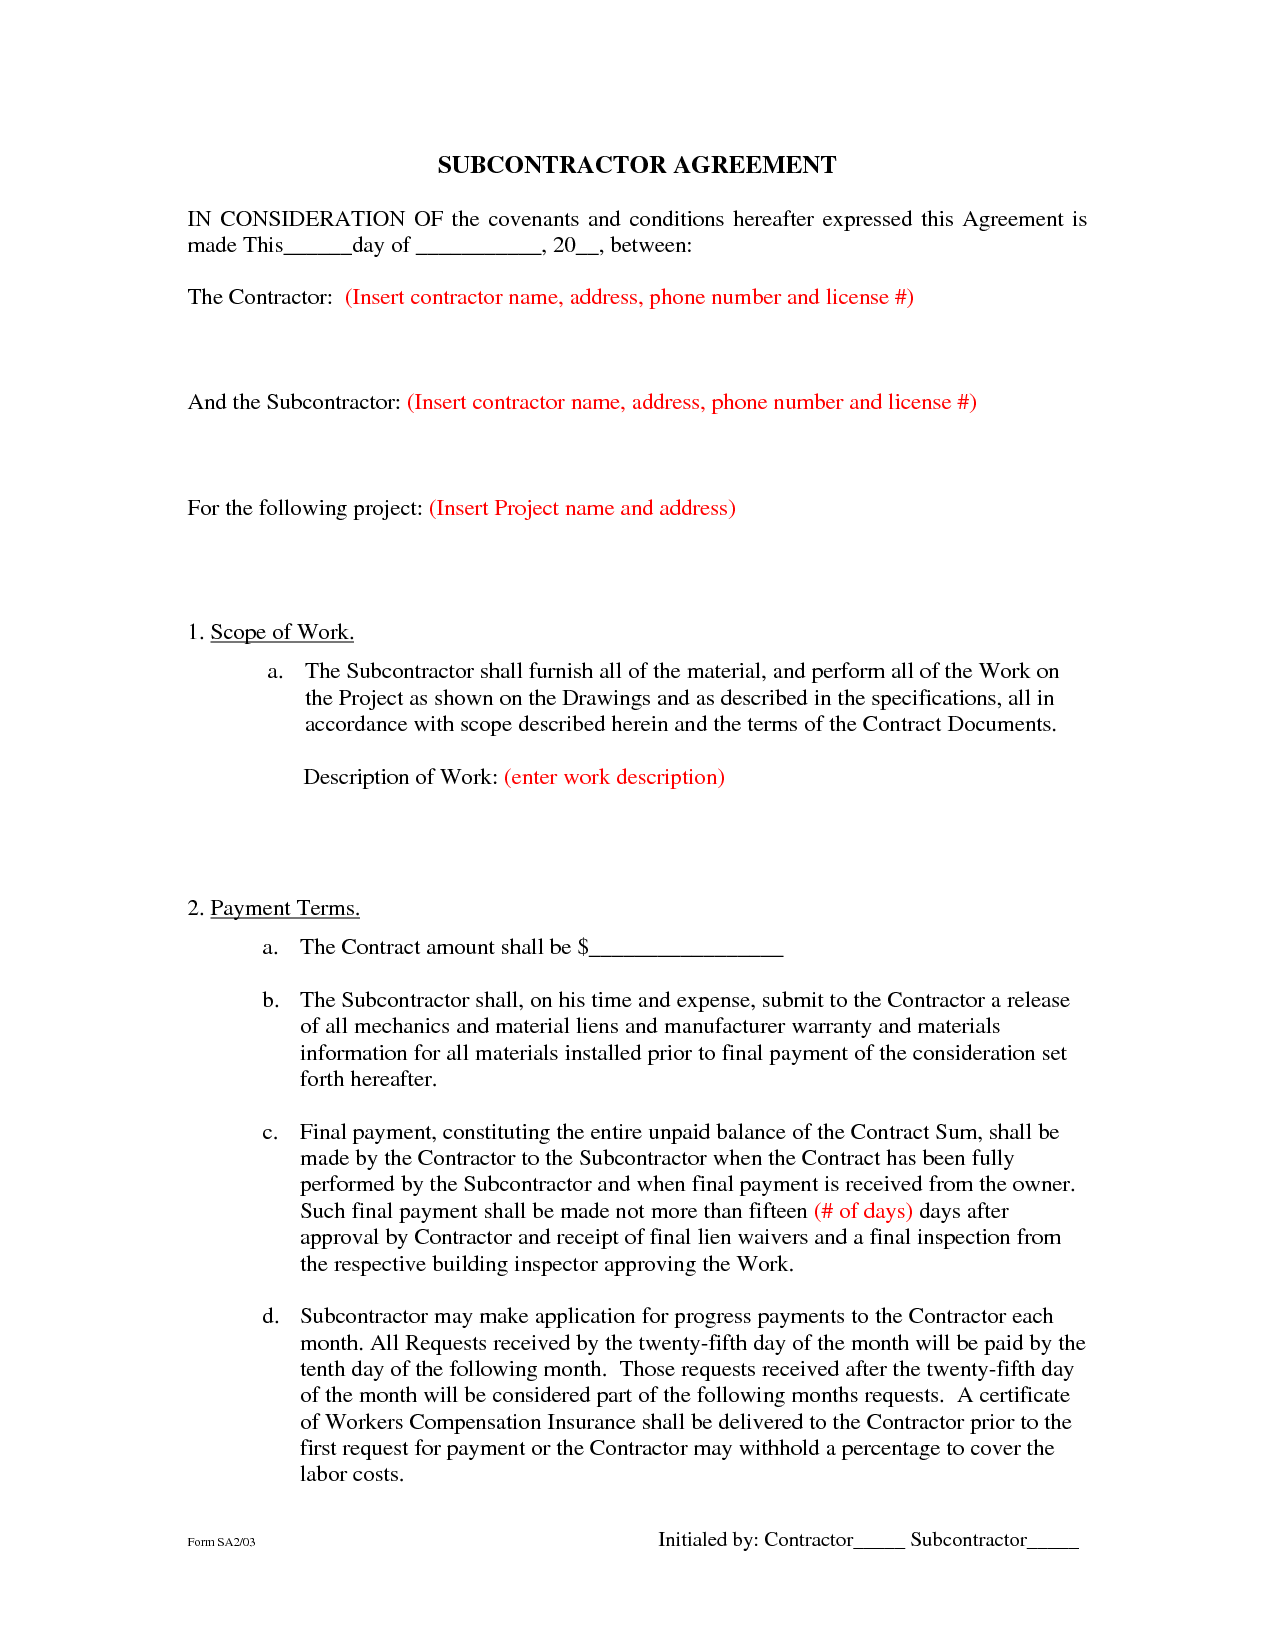 Subcontractor Agreement Template Free. free subcontractor